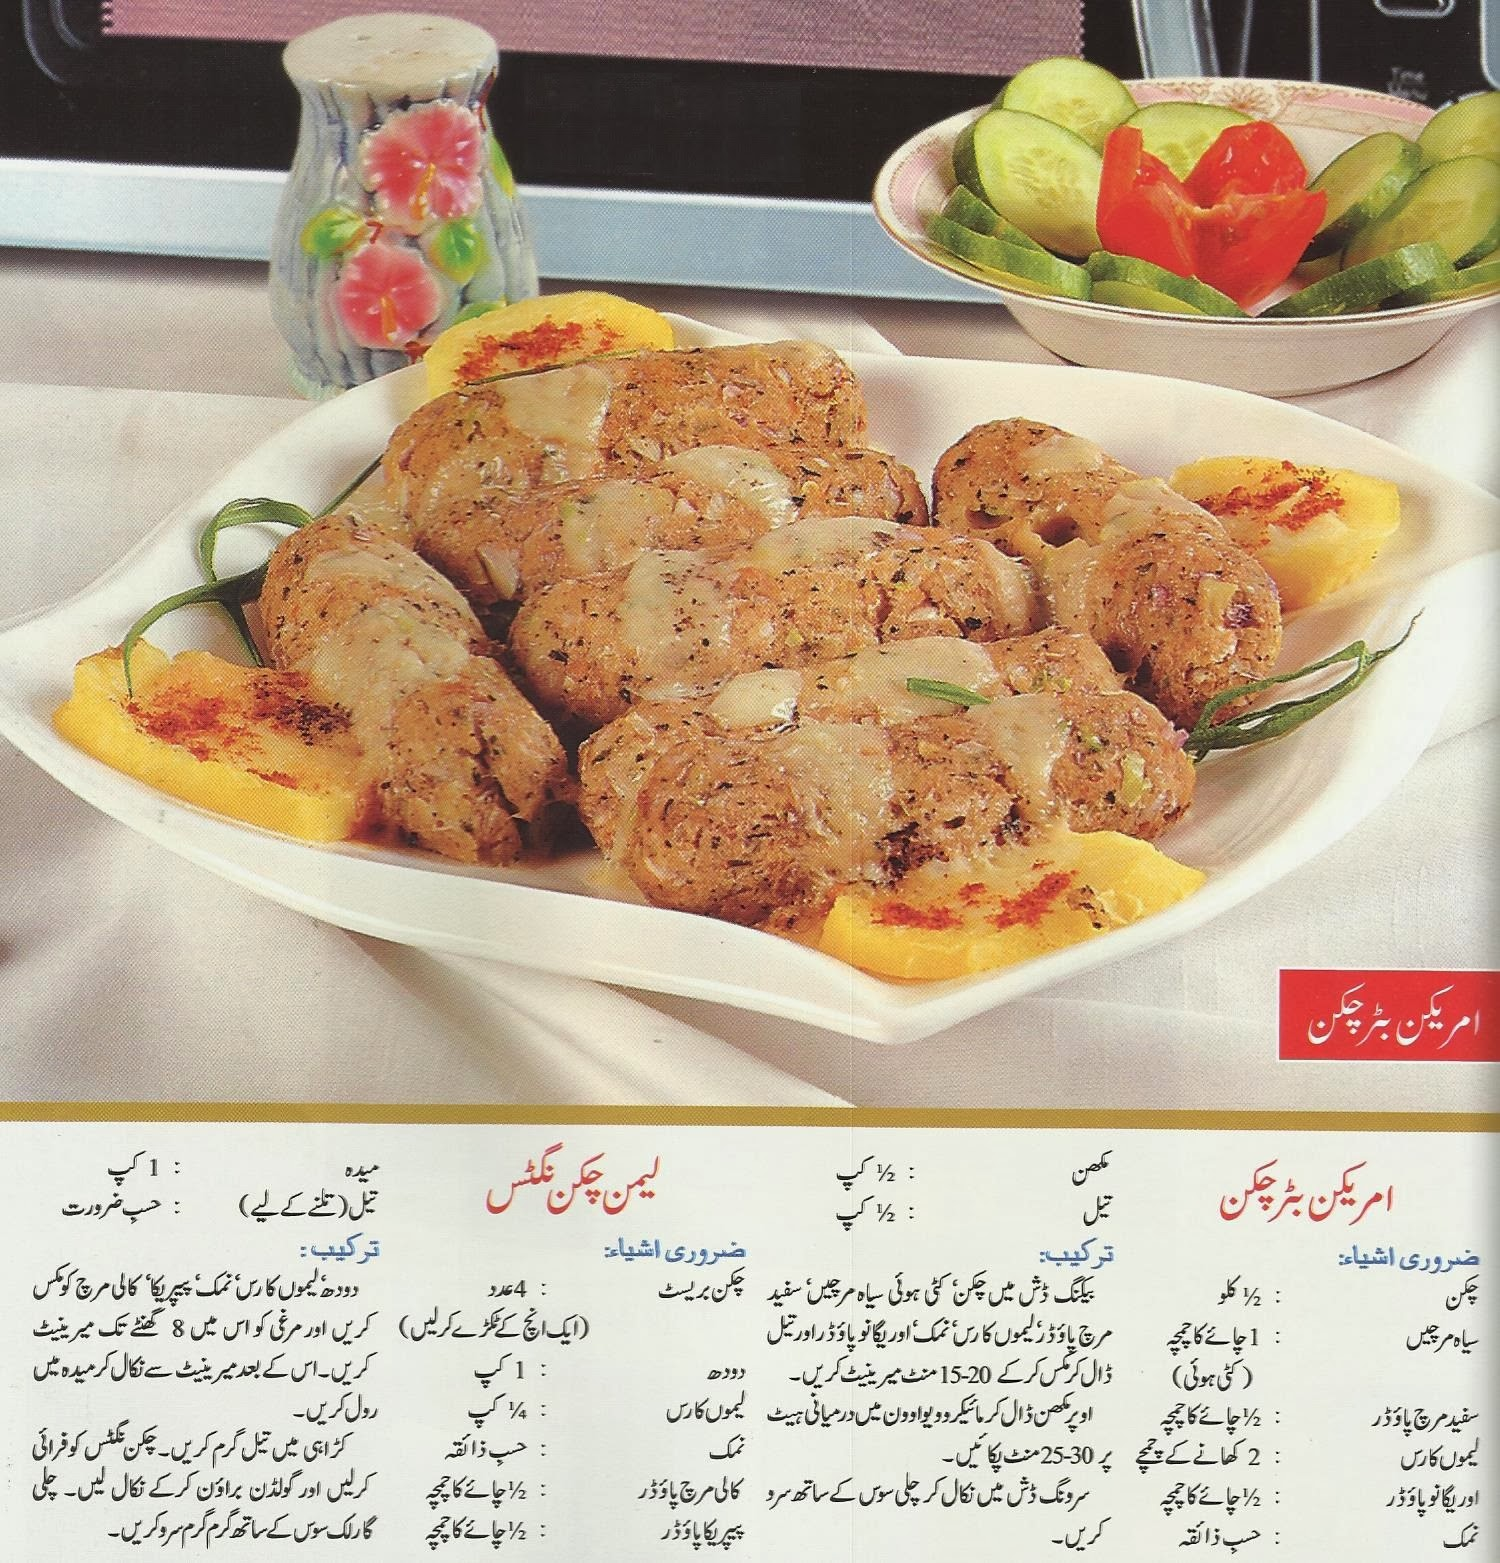 Recipes for kids in urdu for desserts for dinner for chicken with recipes for kids in urdu for desserts for dinner for chicken with ground beef in hindi for cakes italian recipes recipes for kids in urdu for desserts for forumfinder Image collections